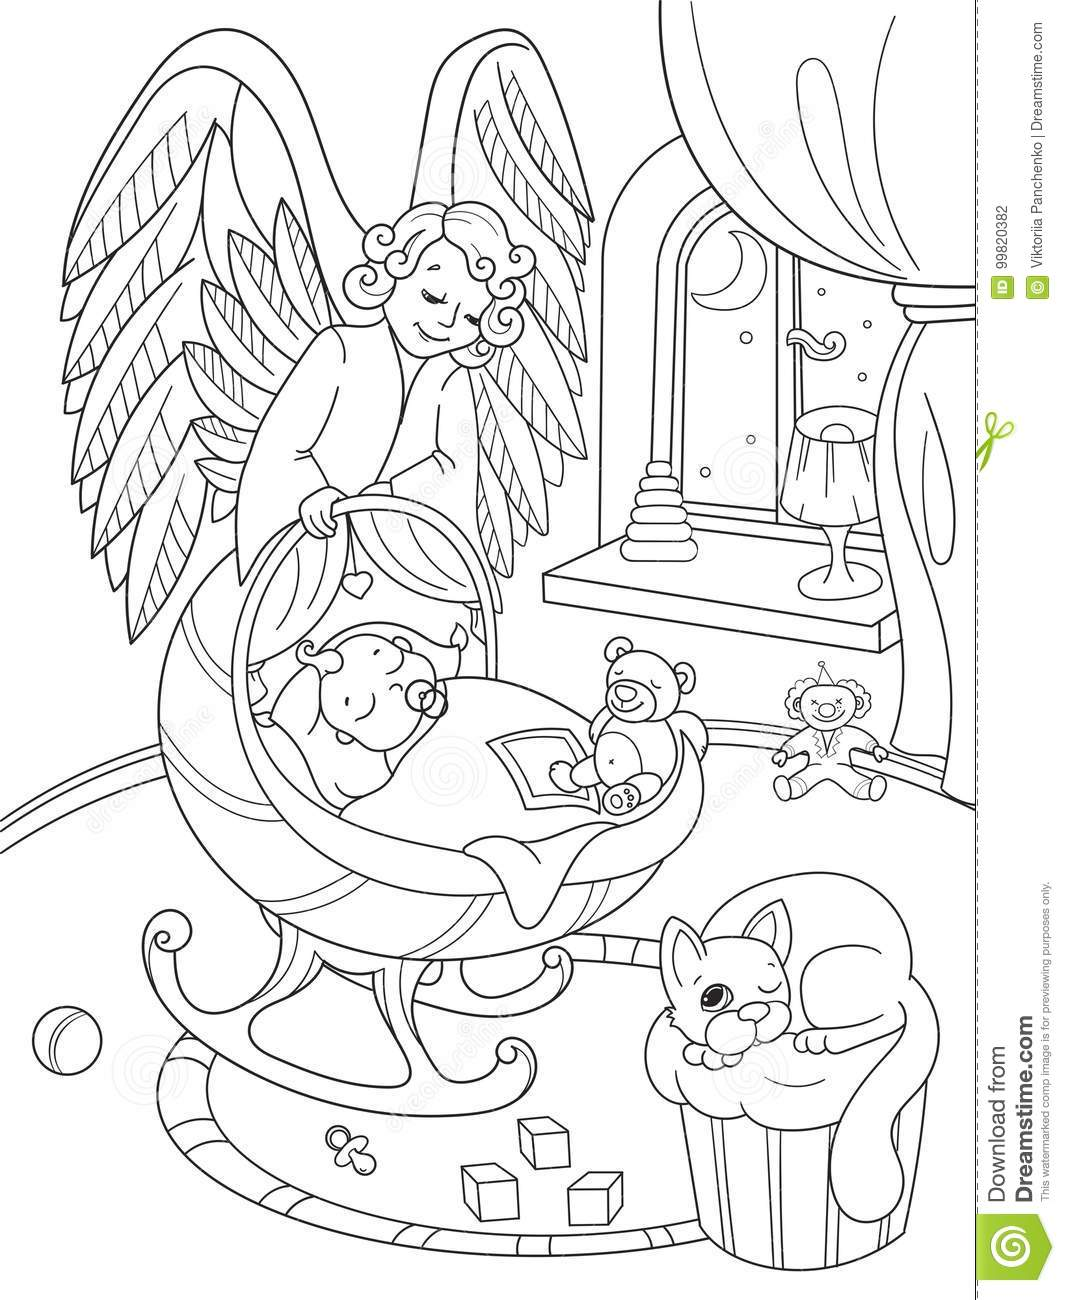 Coloring childrens room - Angel Book Coloring Guardian Interior Room